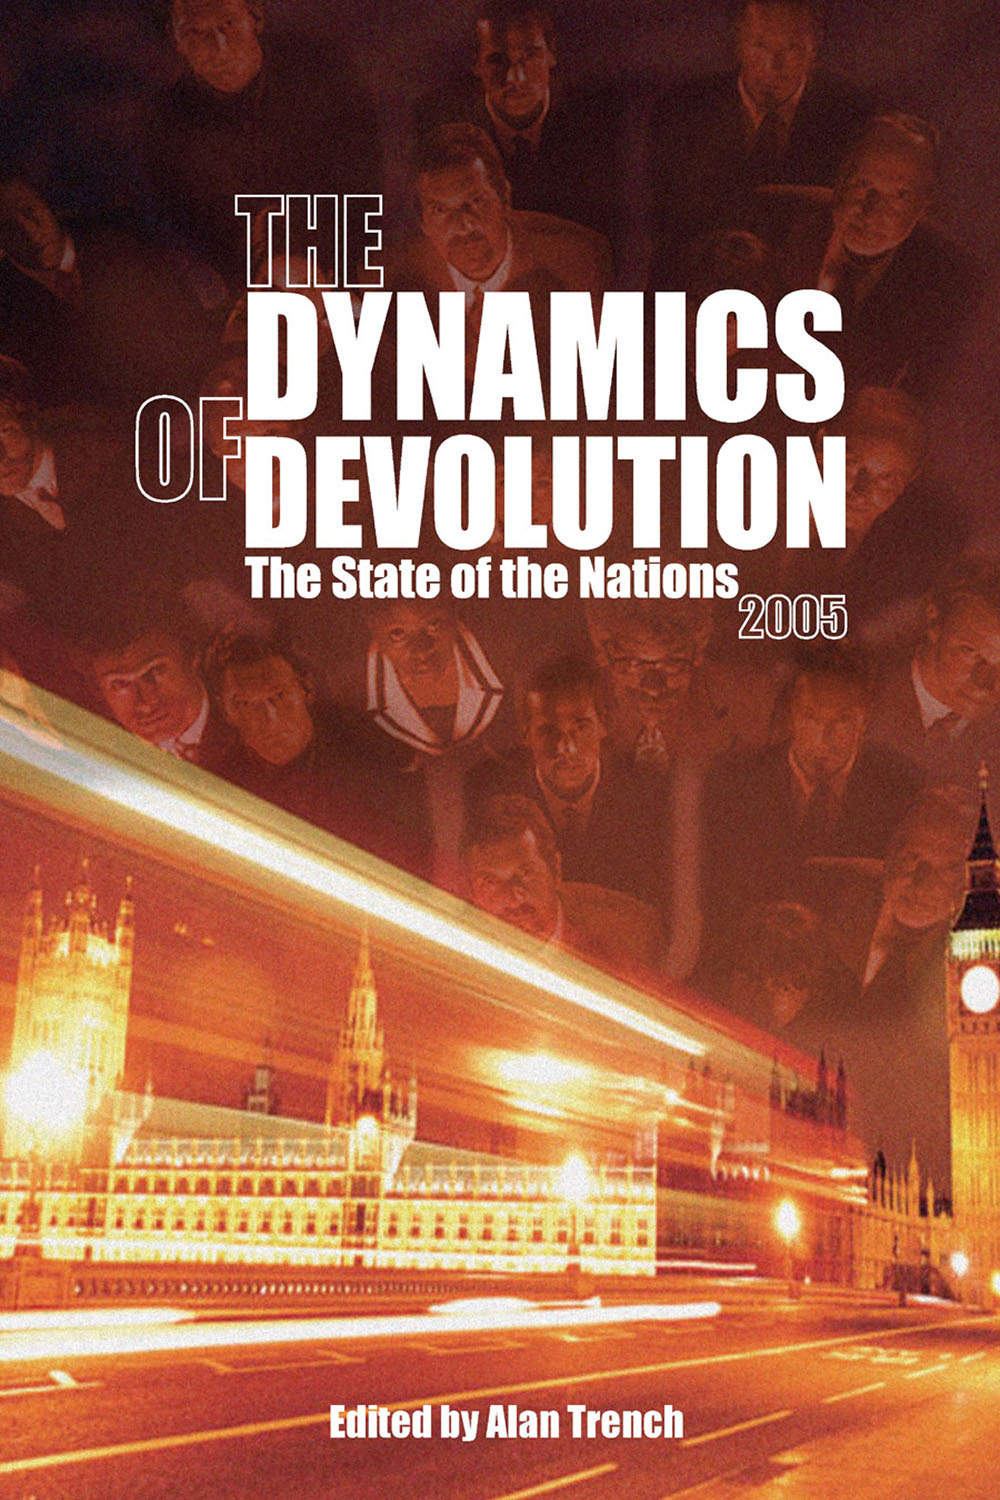 Trench, Alan - The Dynamics of Devolution, ebook